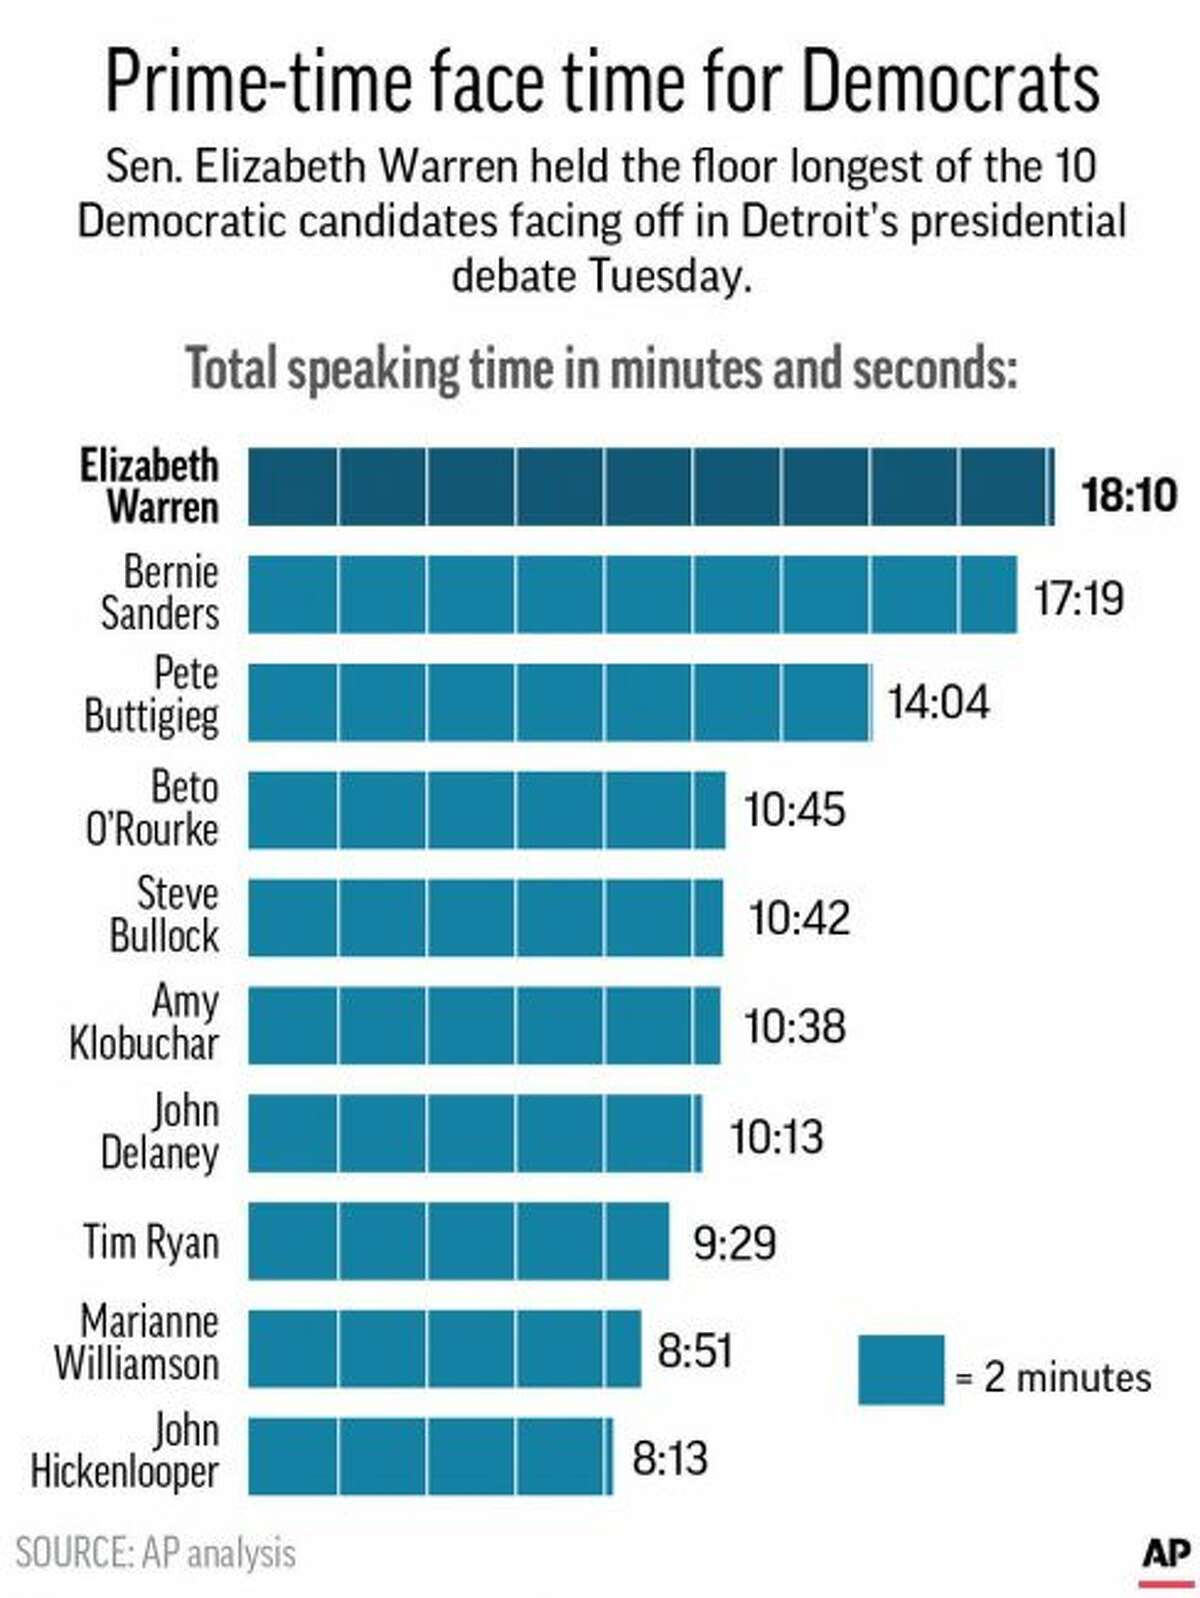 Airtime consumed by each candidate in Tuesday's Democratic debate in Detroit;